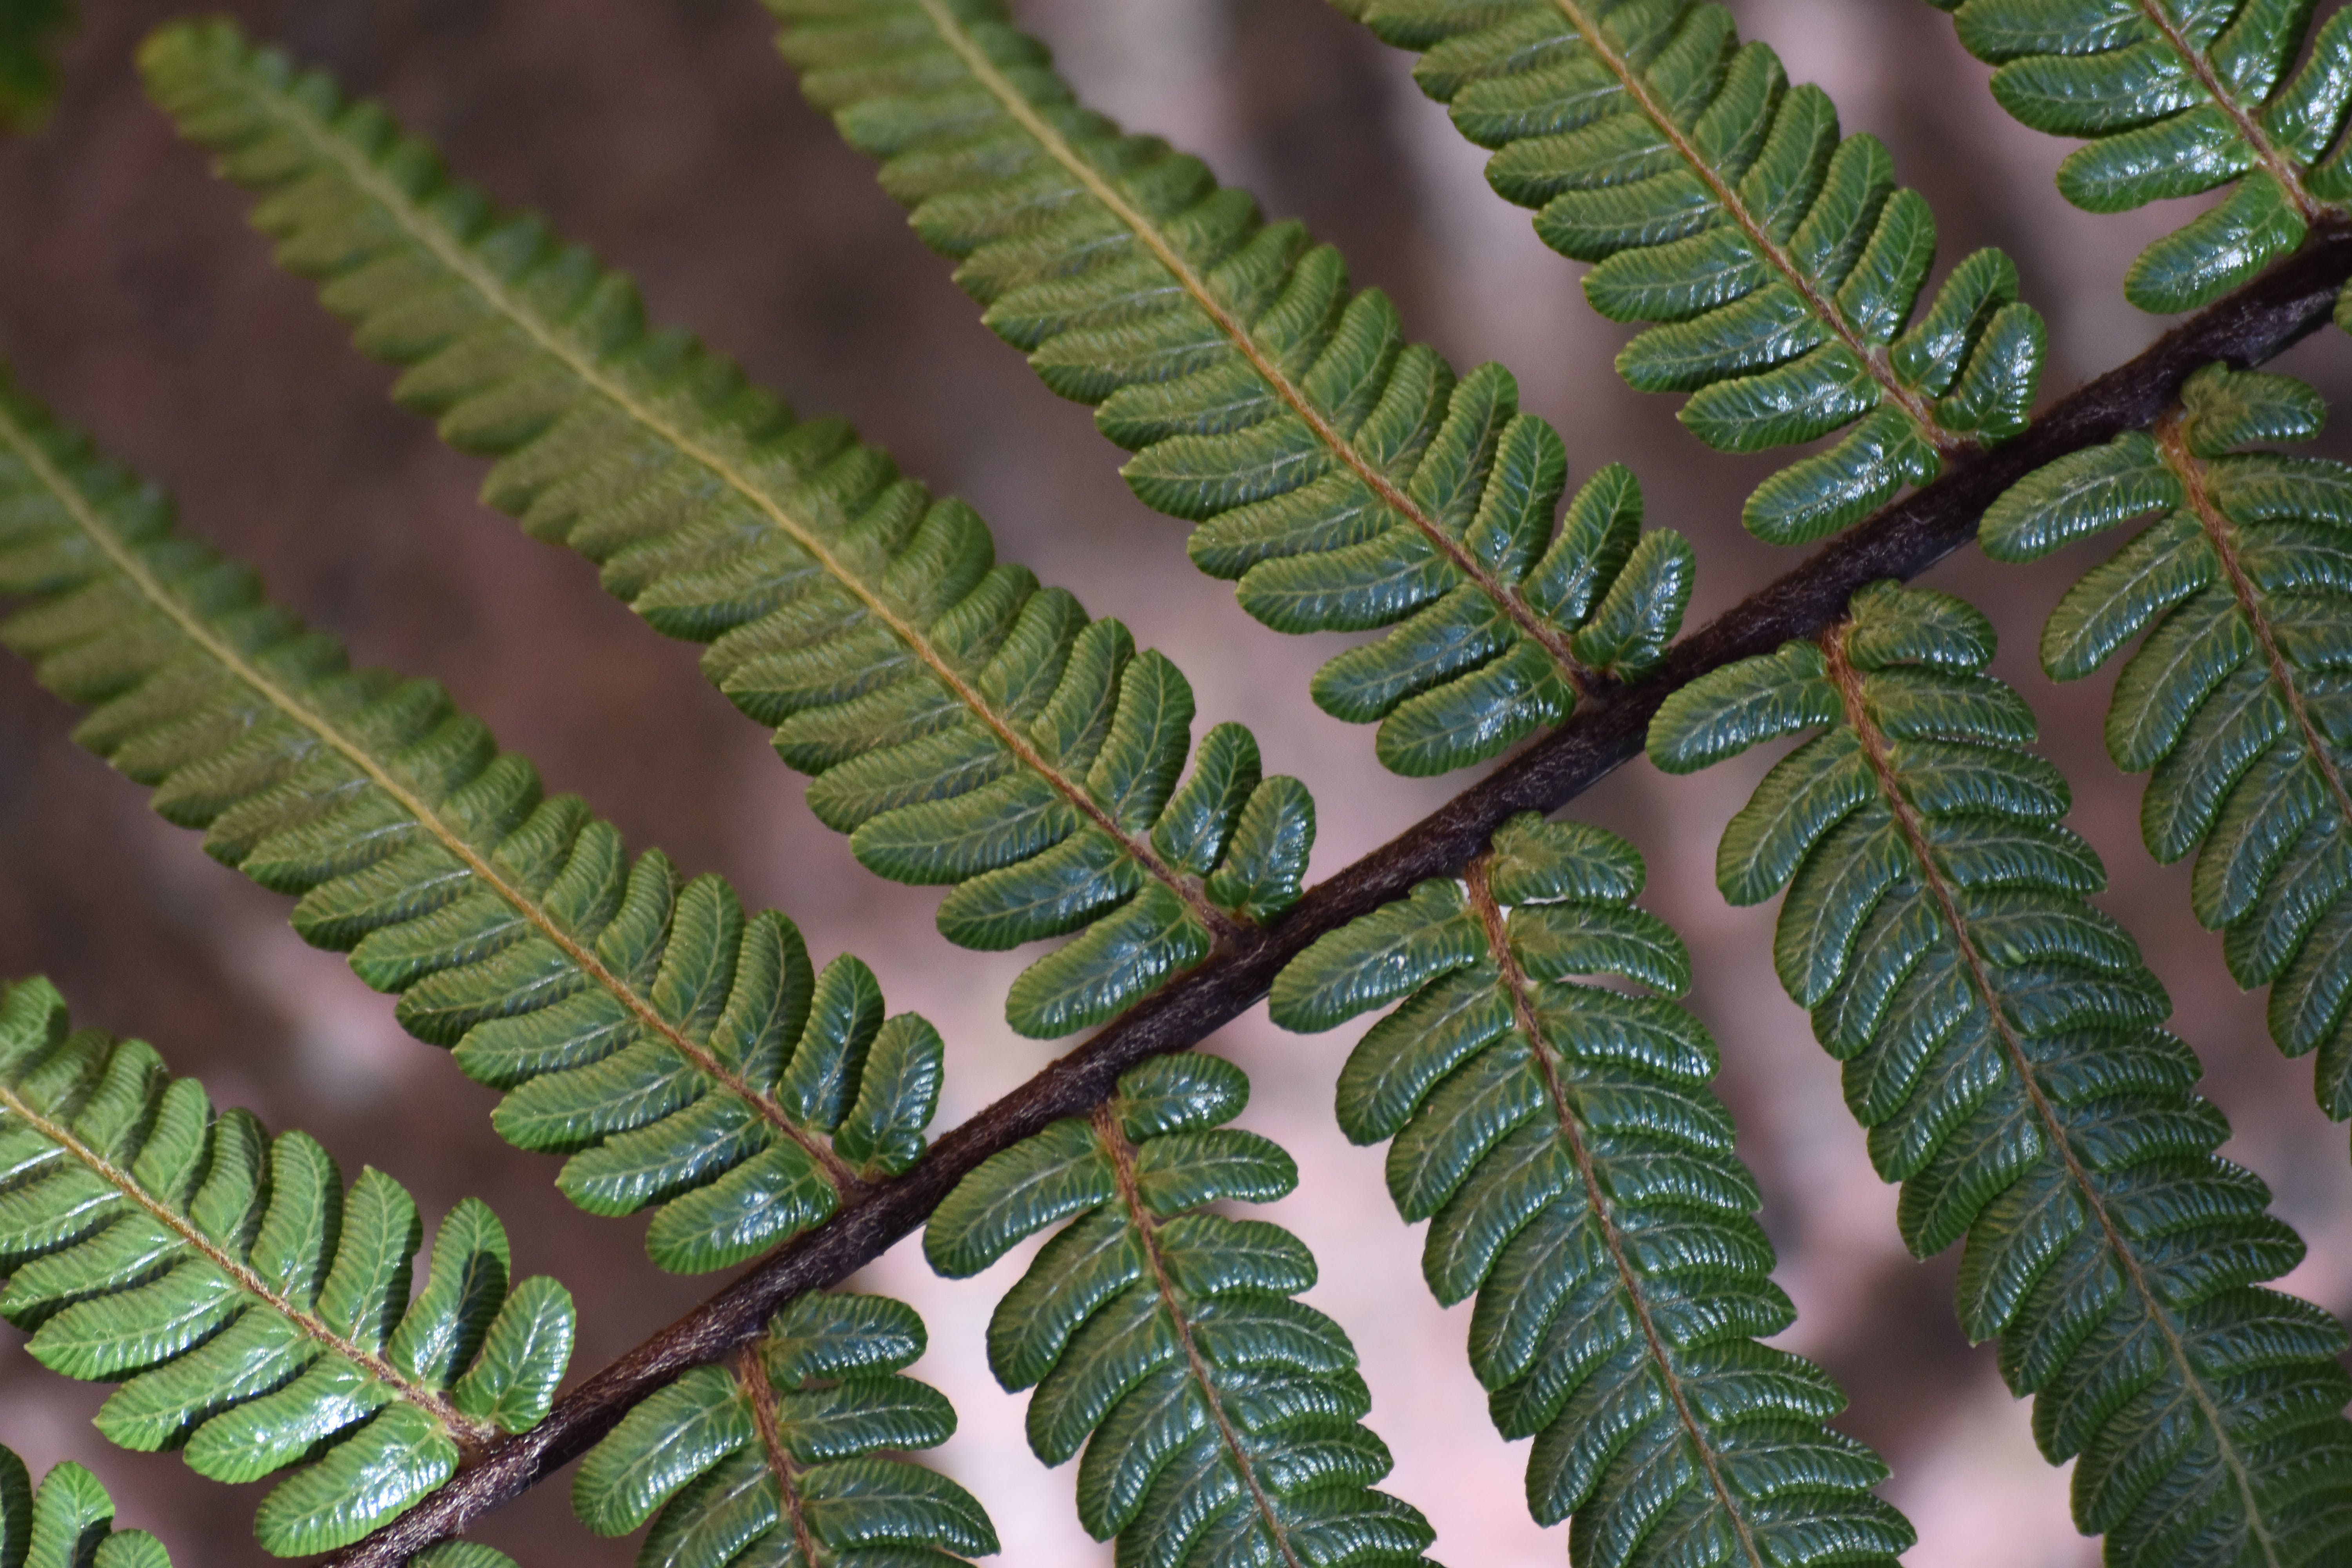 Free stock photo of green fern